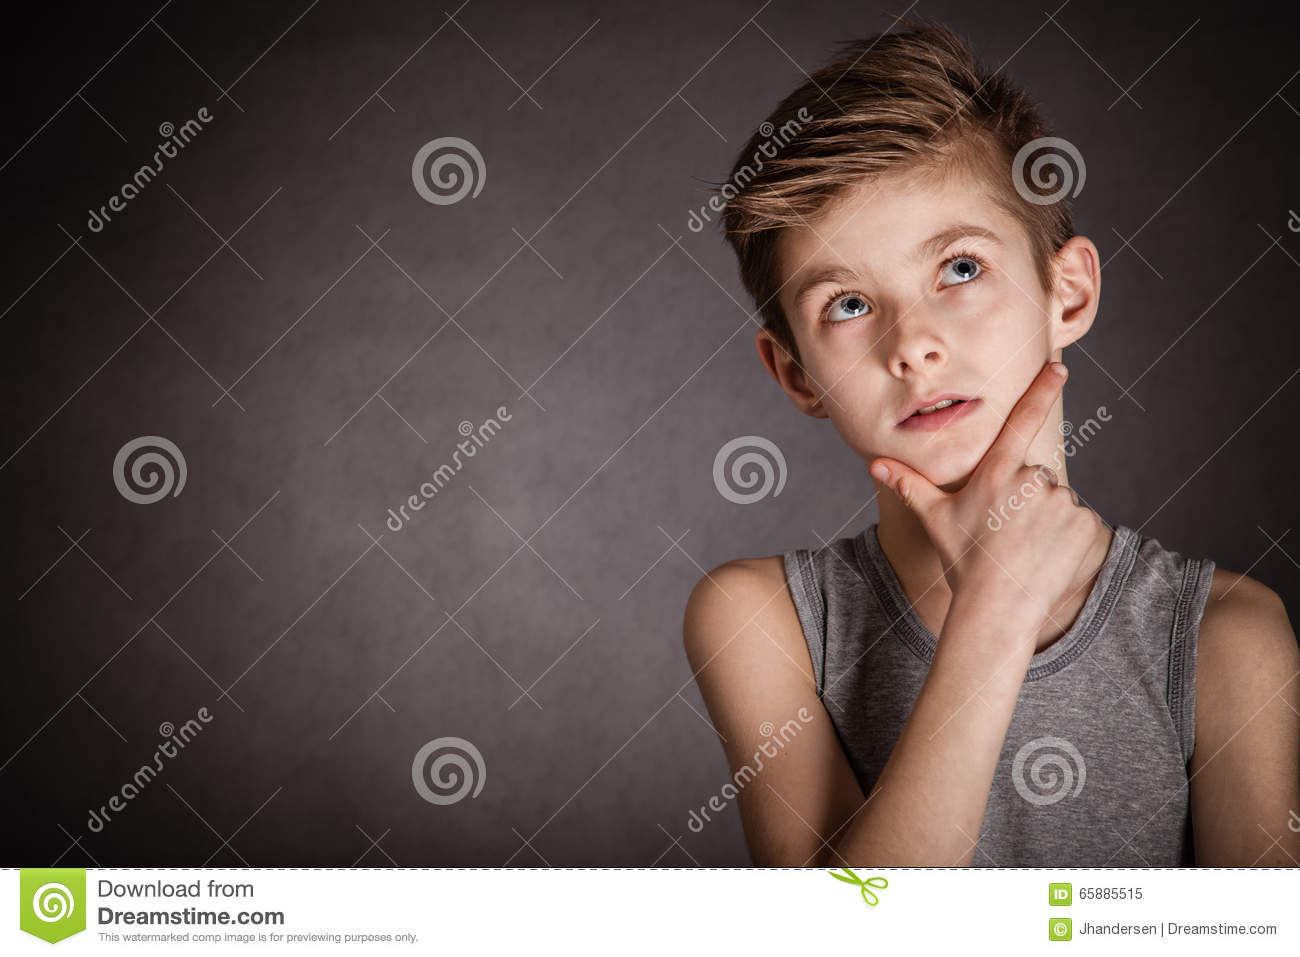 Thoughtful Boy Looking Up on Gray with Copy Space